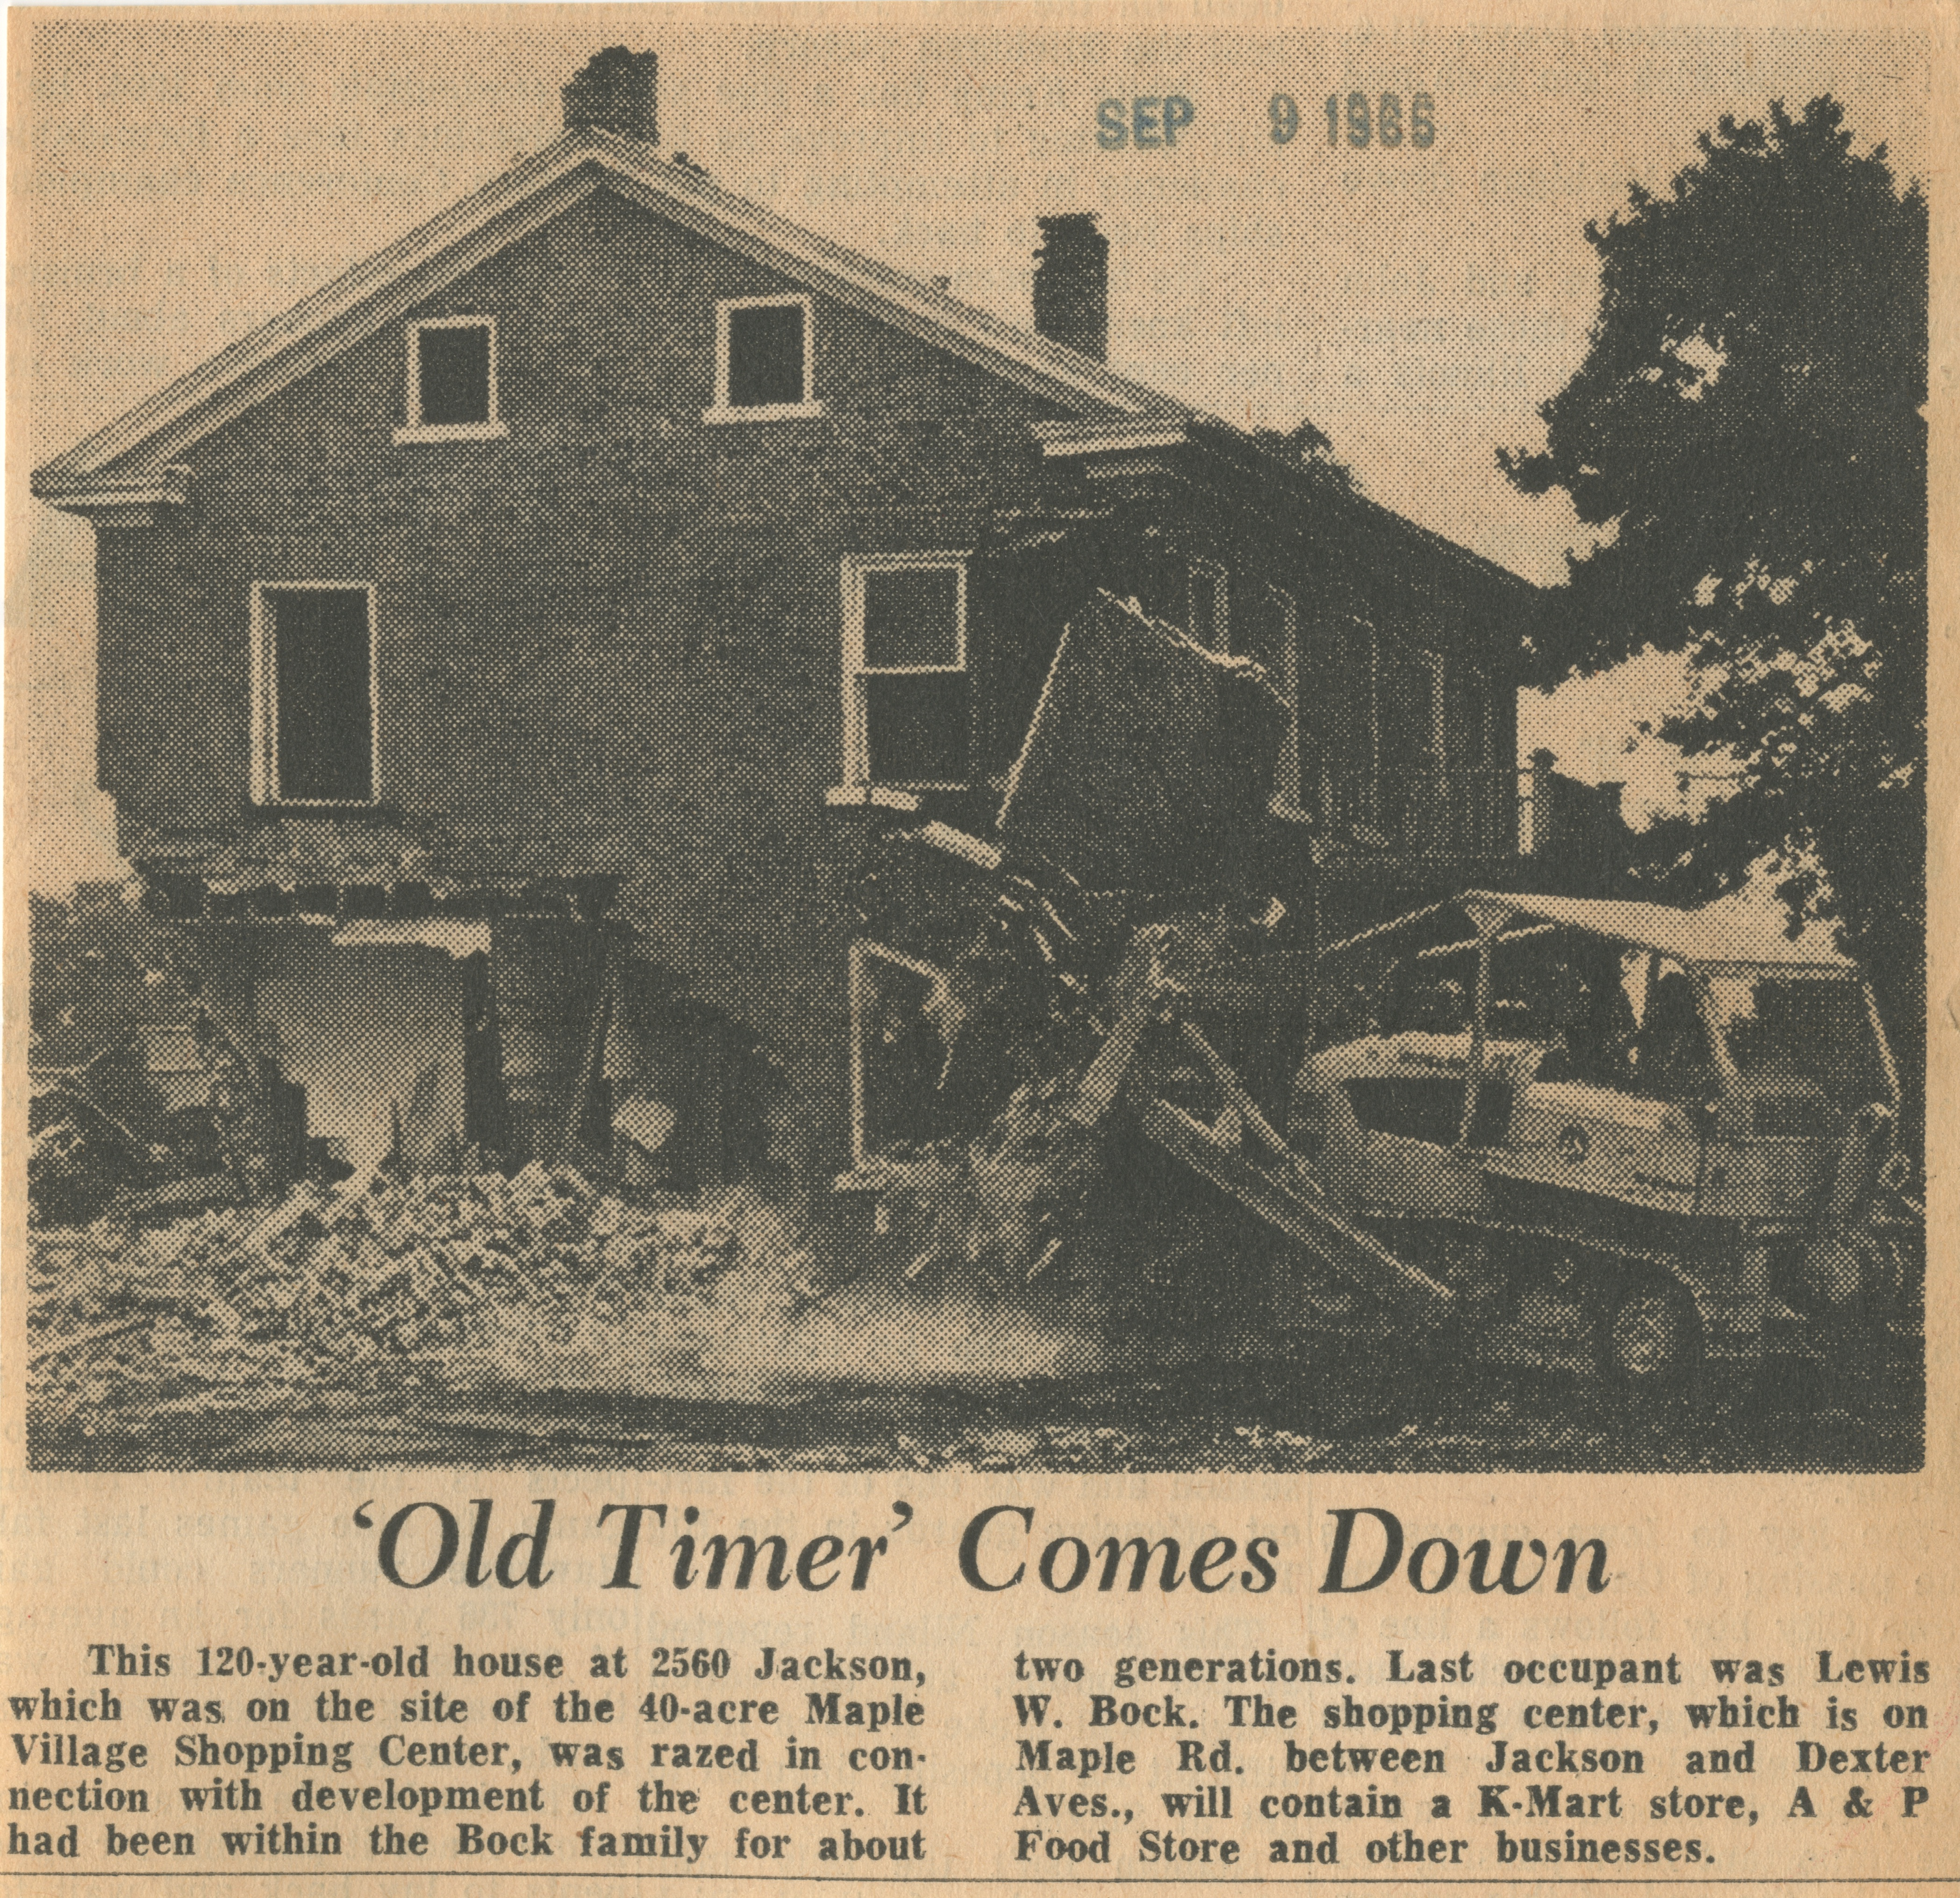 'Old Timer' Comes Down image